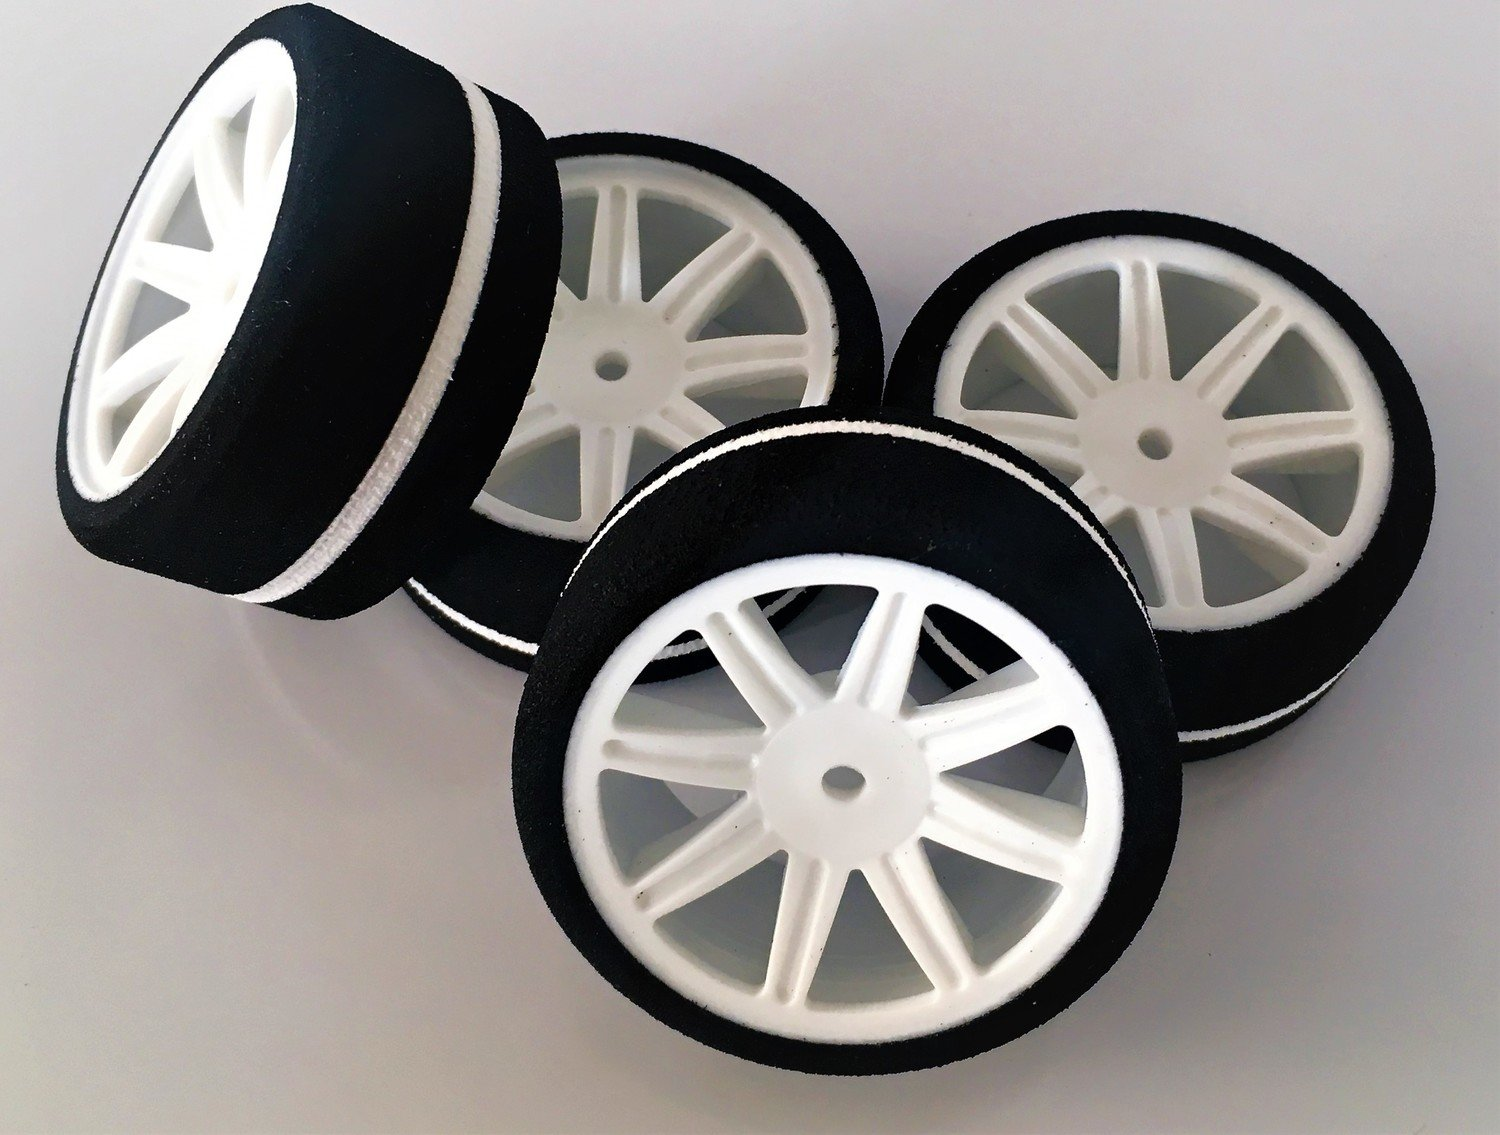 Contact RC JW38FA 1//10 Front Foam Tires WGT//GT10 38Shore Lilac White Wheels 2